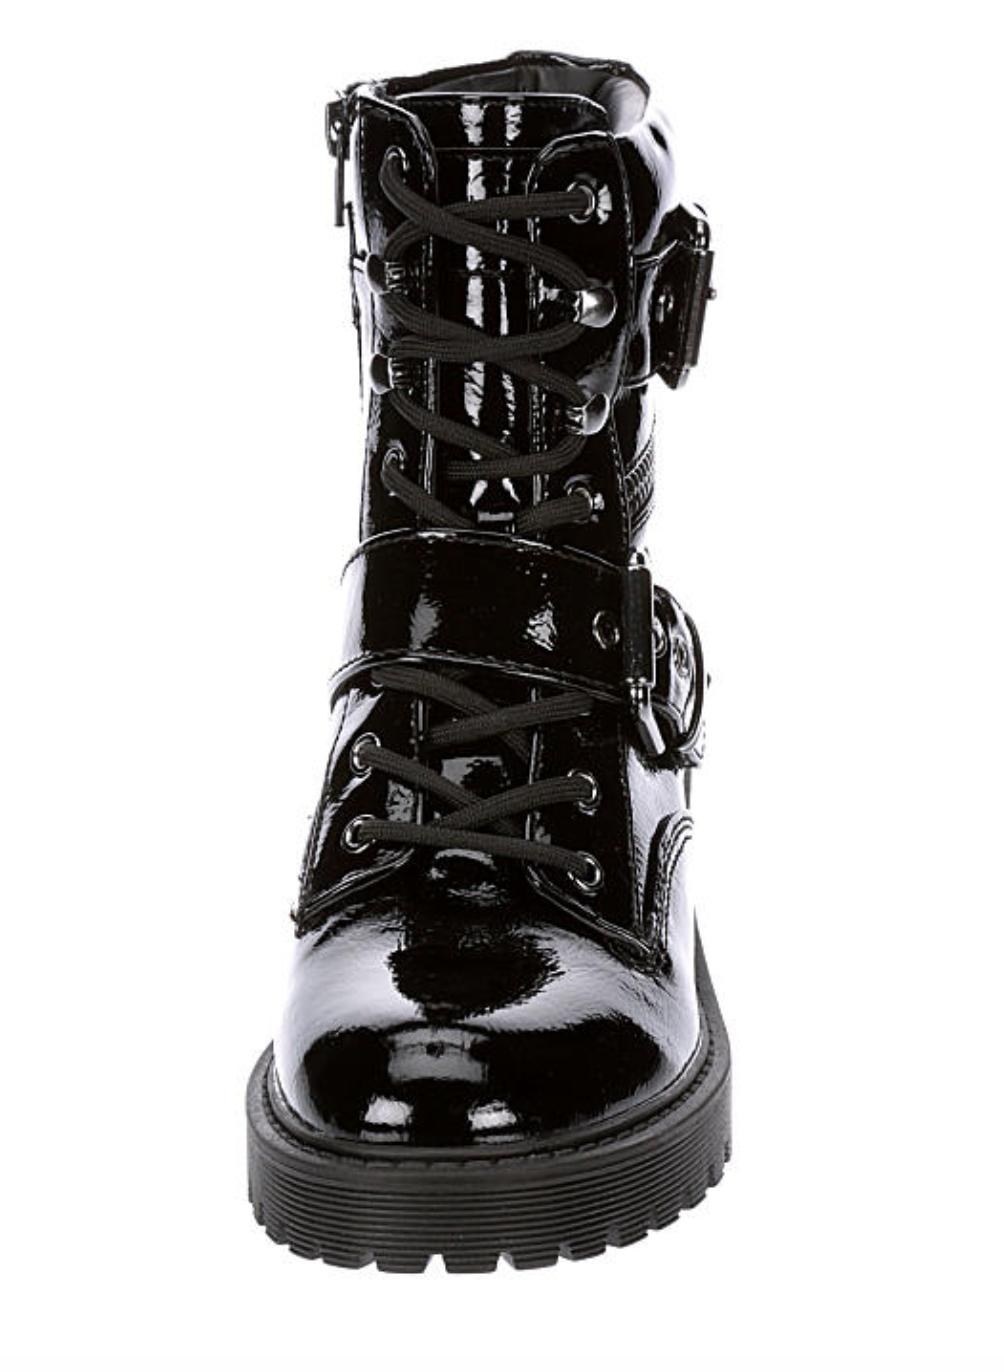 New G By Guess Patent Slayder Casual Boots adjustable buckles Black 6 -10